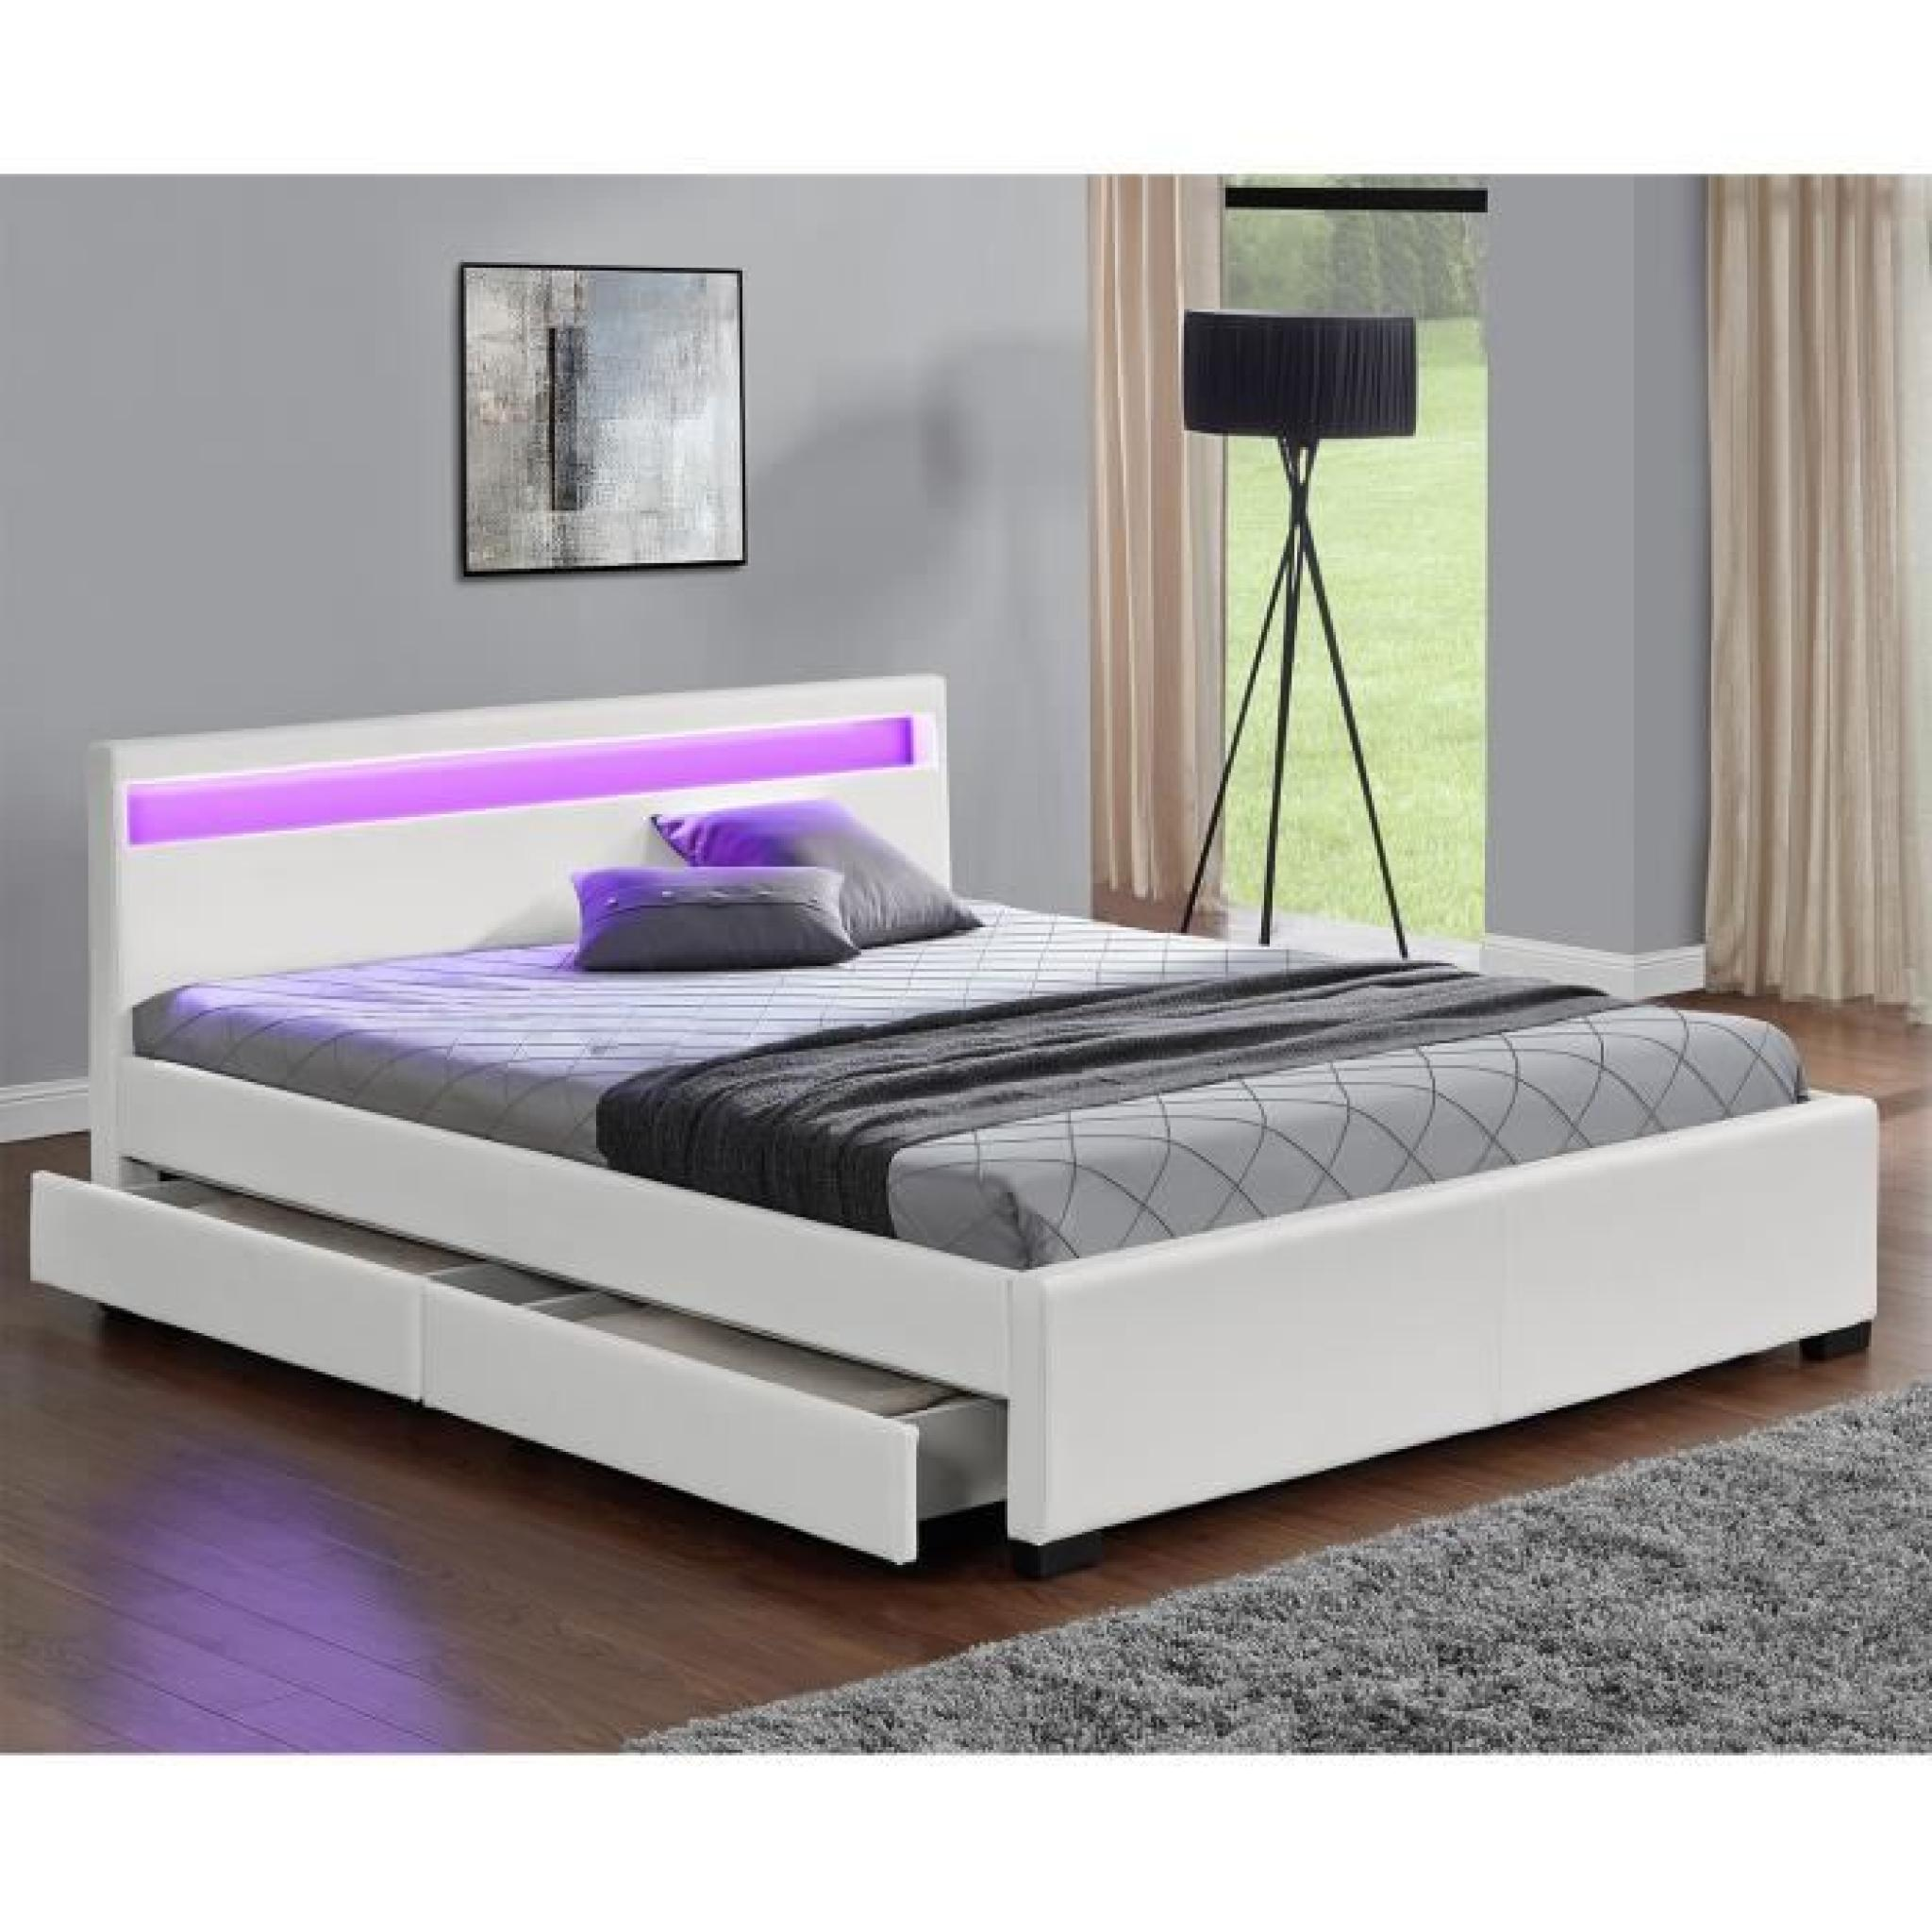 lit enfield blanc led et rangements tiroirs 140x190 cm. Black Bedroom Furniture Sets. Home Design Ideas